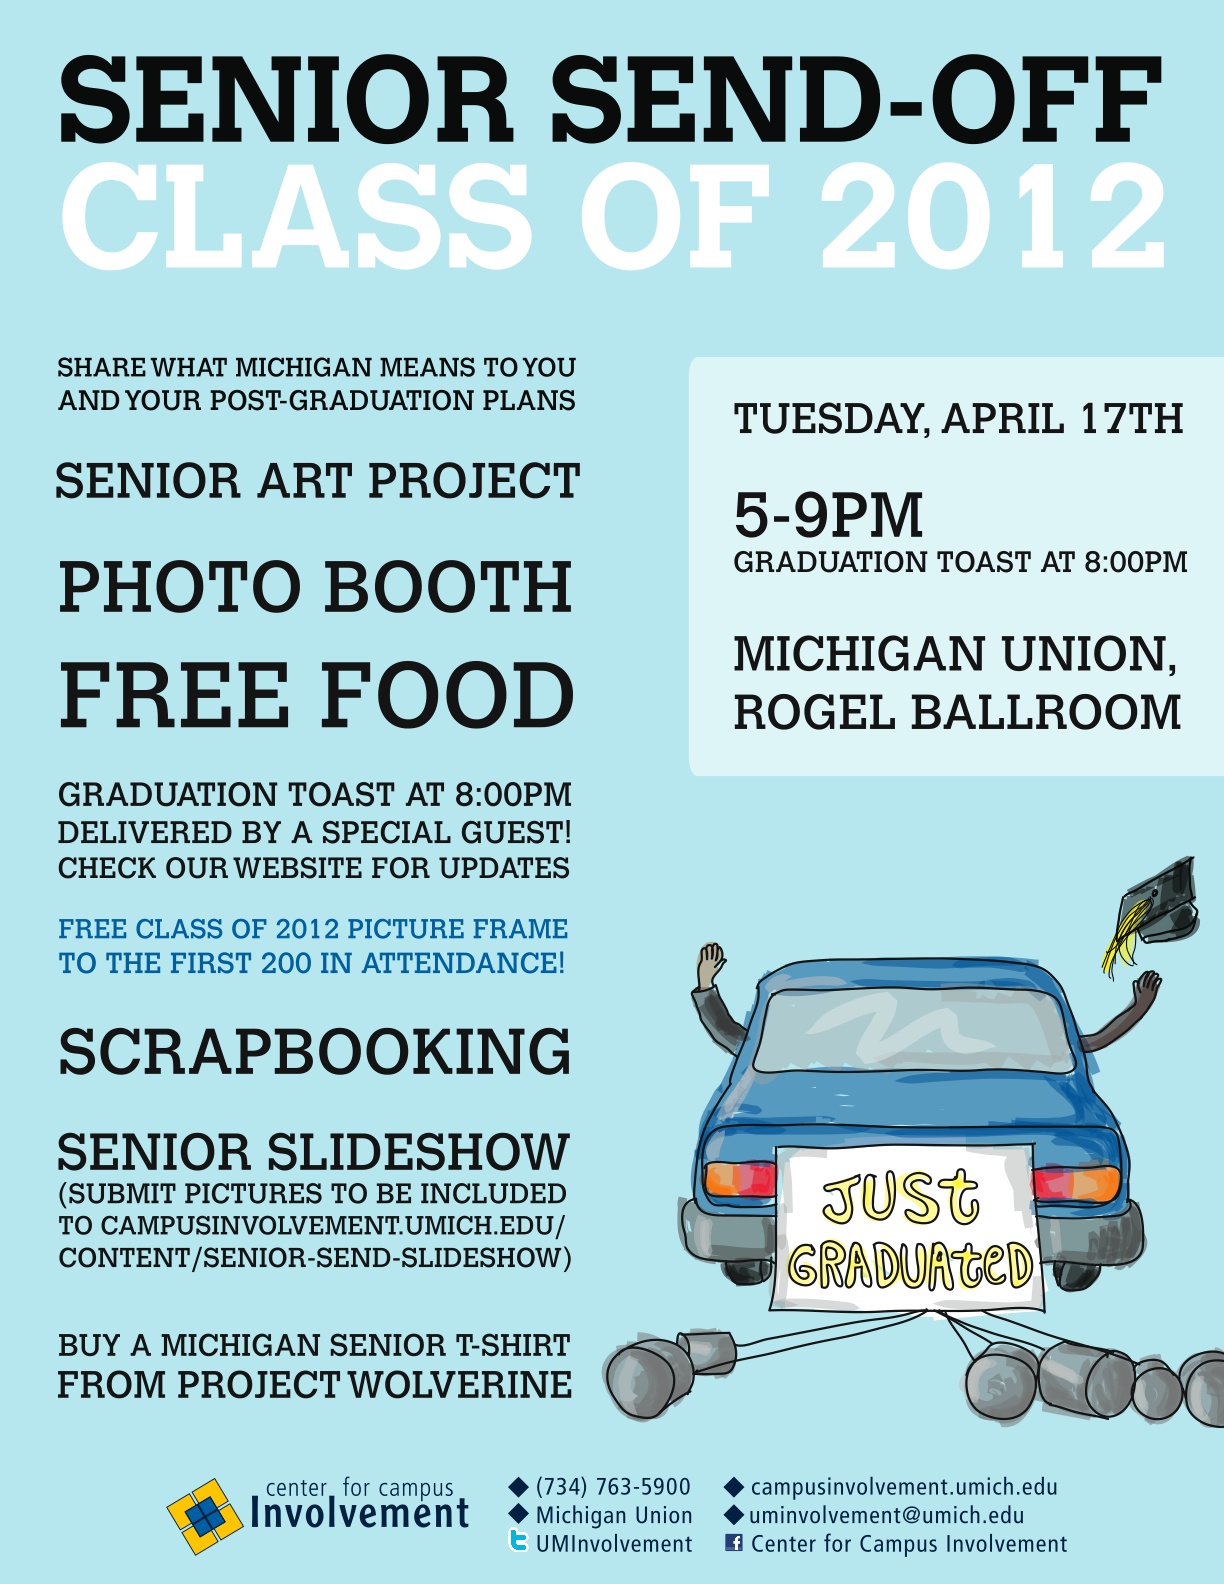 CAP & GOWN COUNTDOWN - SENIOR SEND-OFF | Campus Involvement